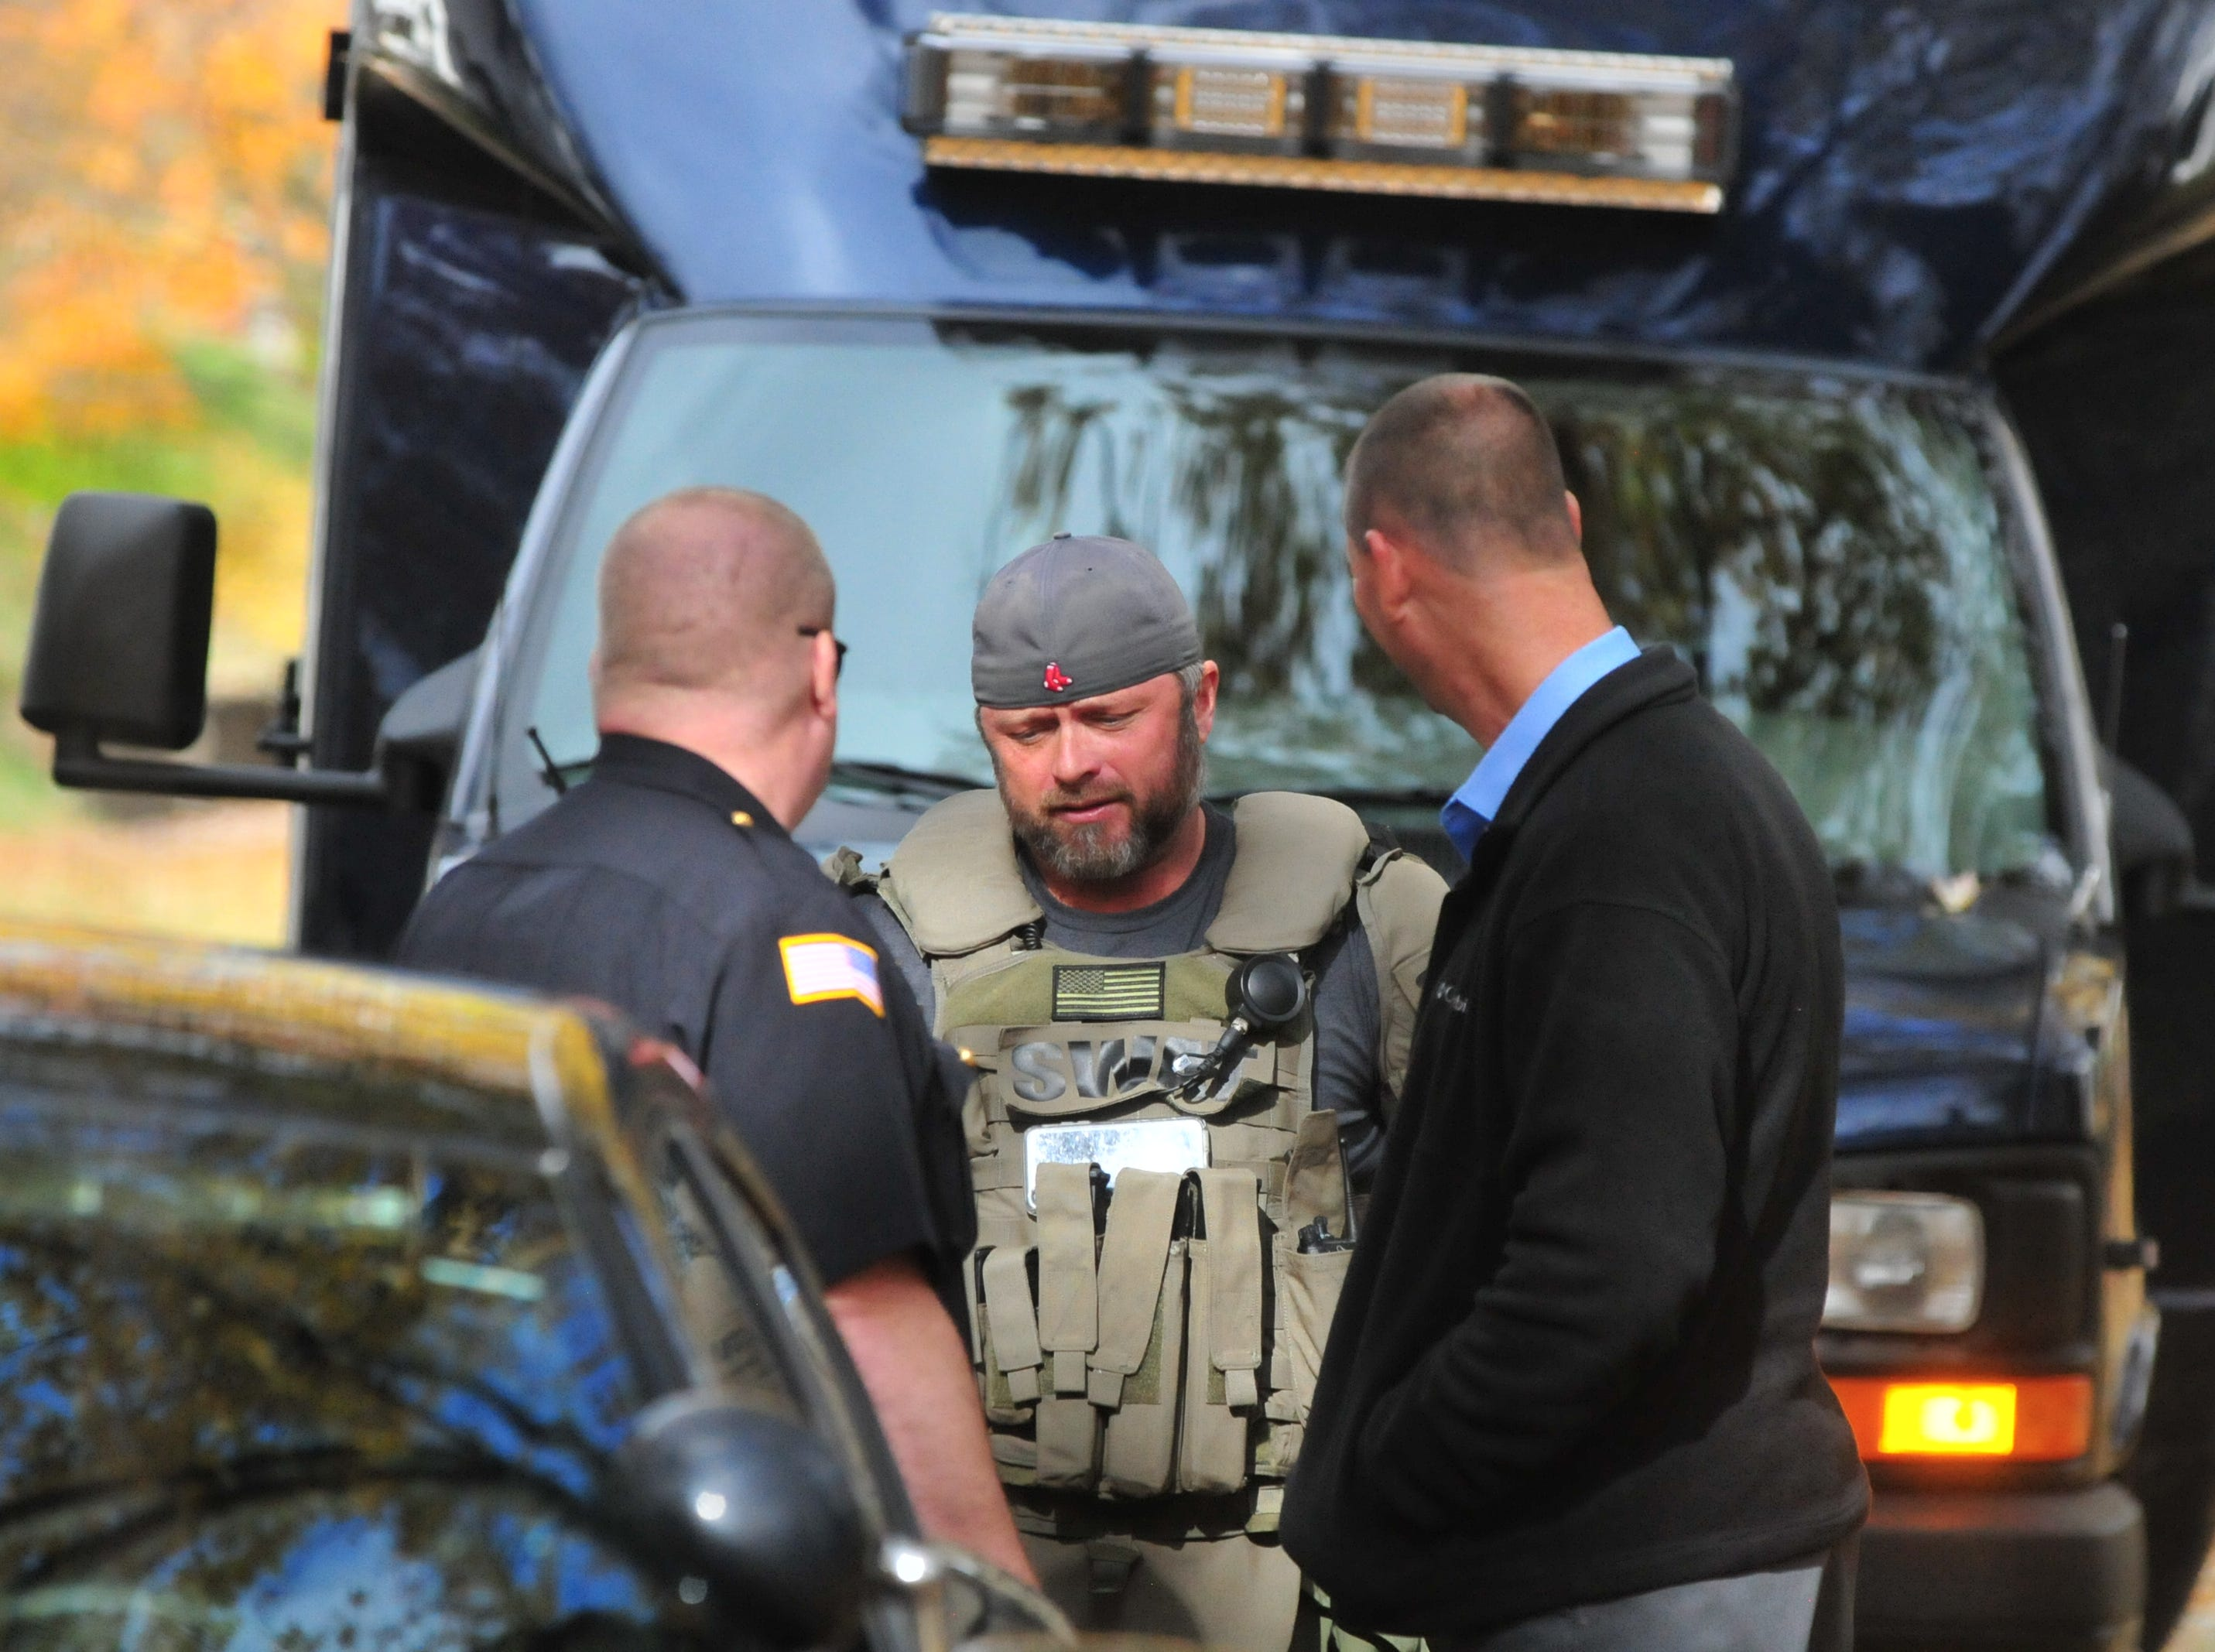 Lt. Scott Crull, commander of the Wayne County Drug Task Force and the SWAT team, talks with Major Jon Bales and Capt. Curt Leverton after Monday's SWAT raid on North 16th Street.